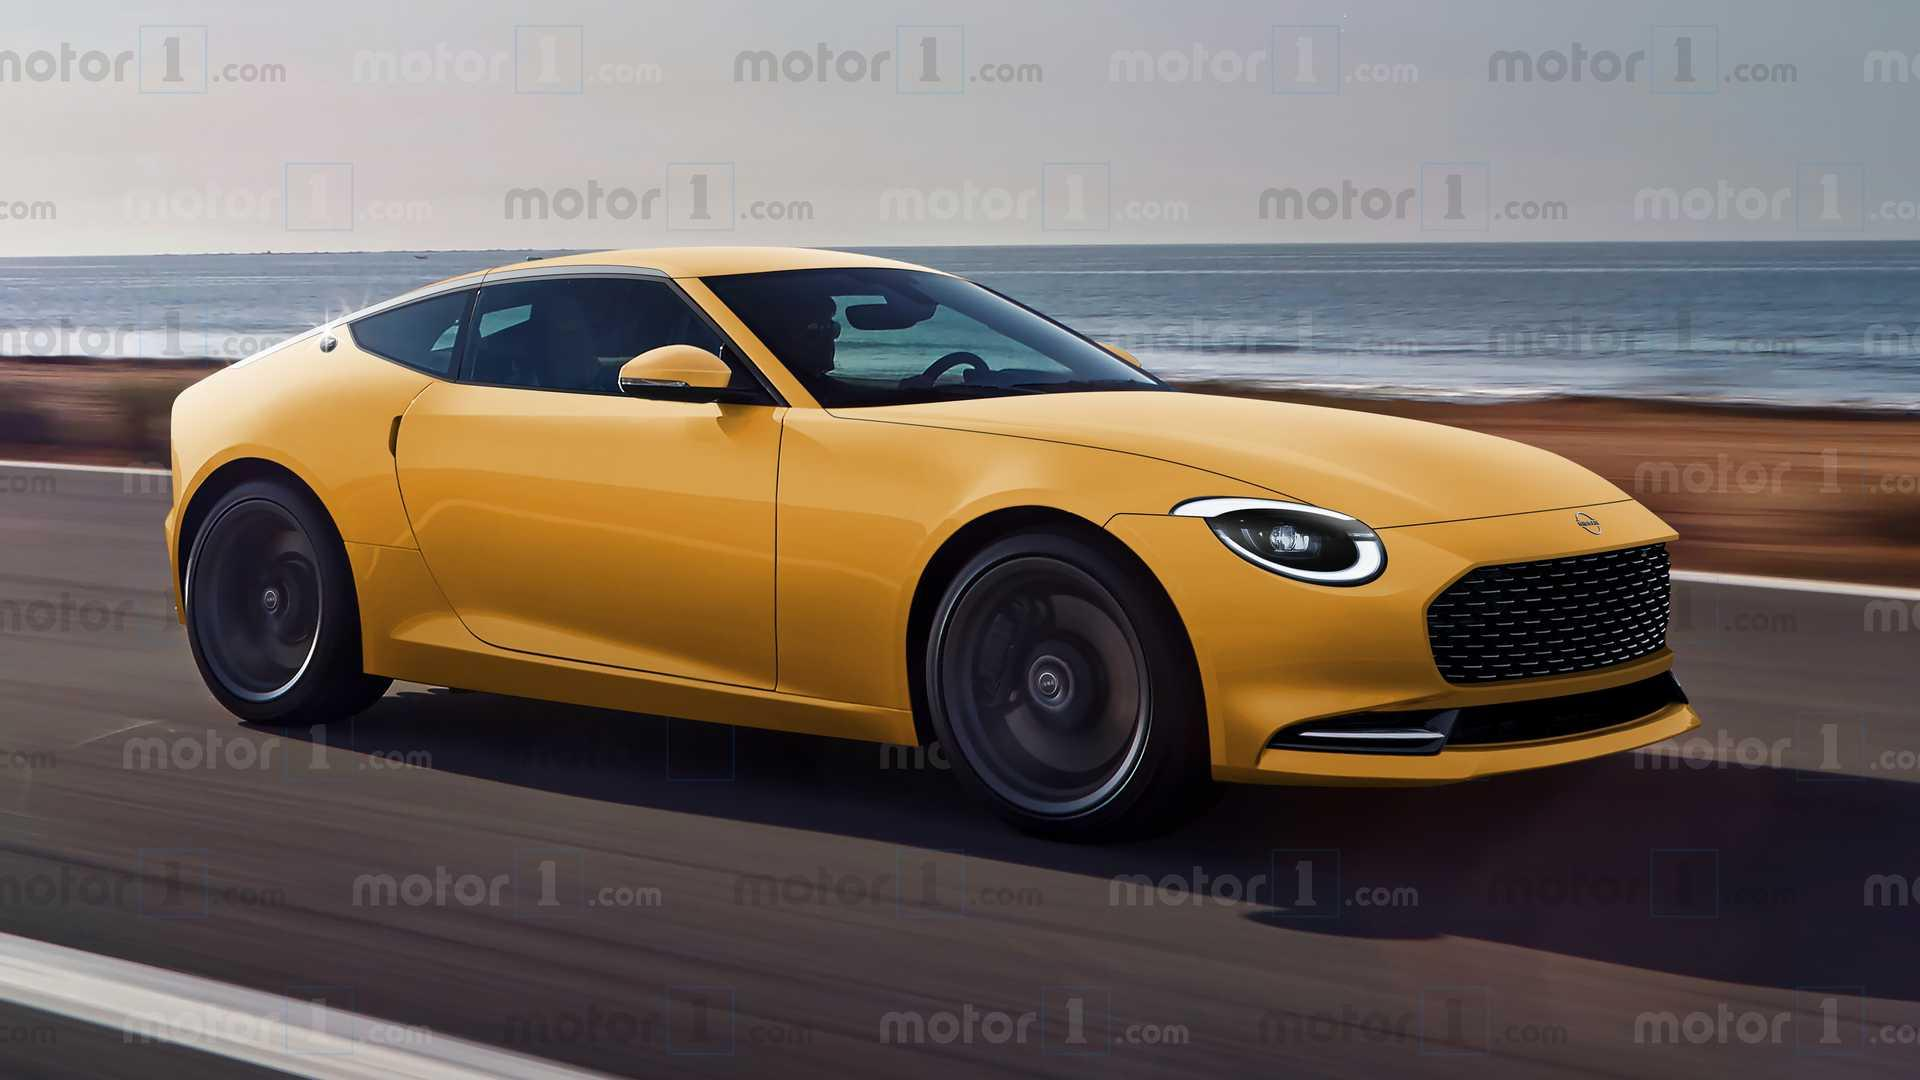 2021 Nissan 400Z: Here's what it could look like